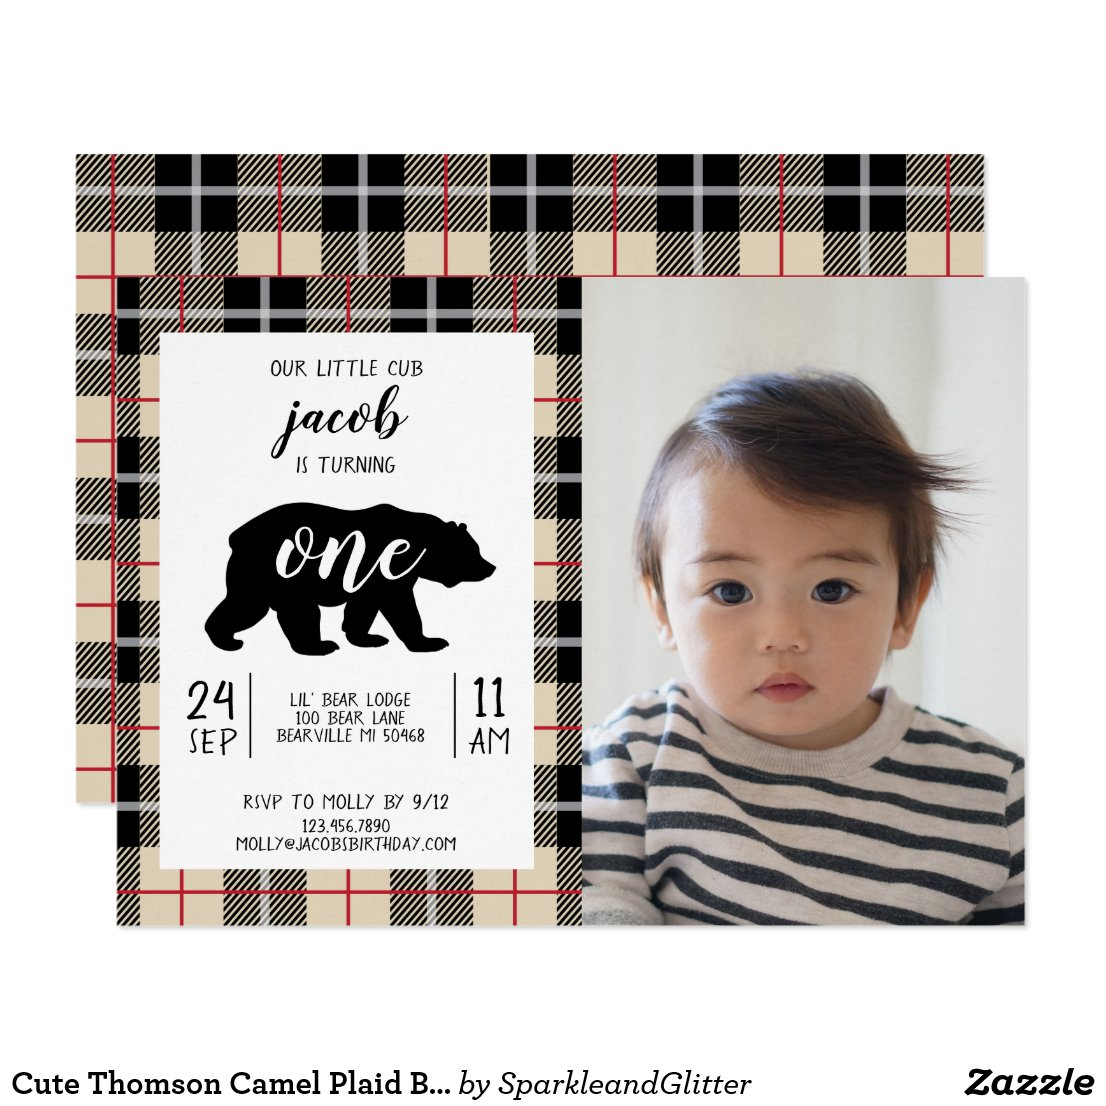 Cute Thomson Camel Plaid Baby Photo 1st Birthday Invitation